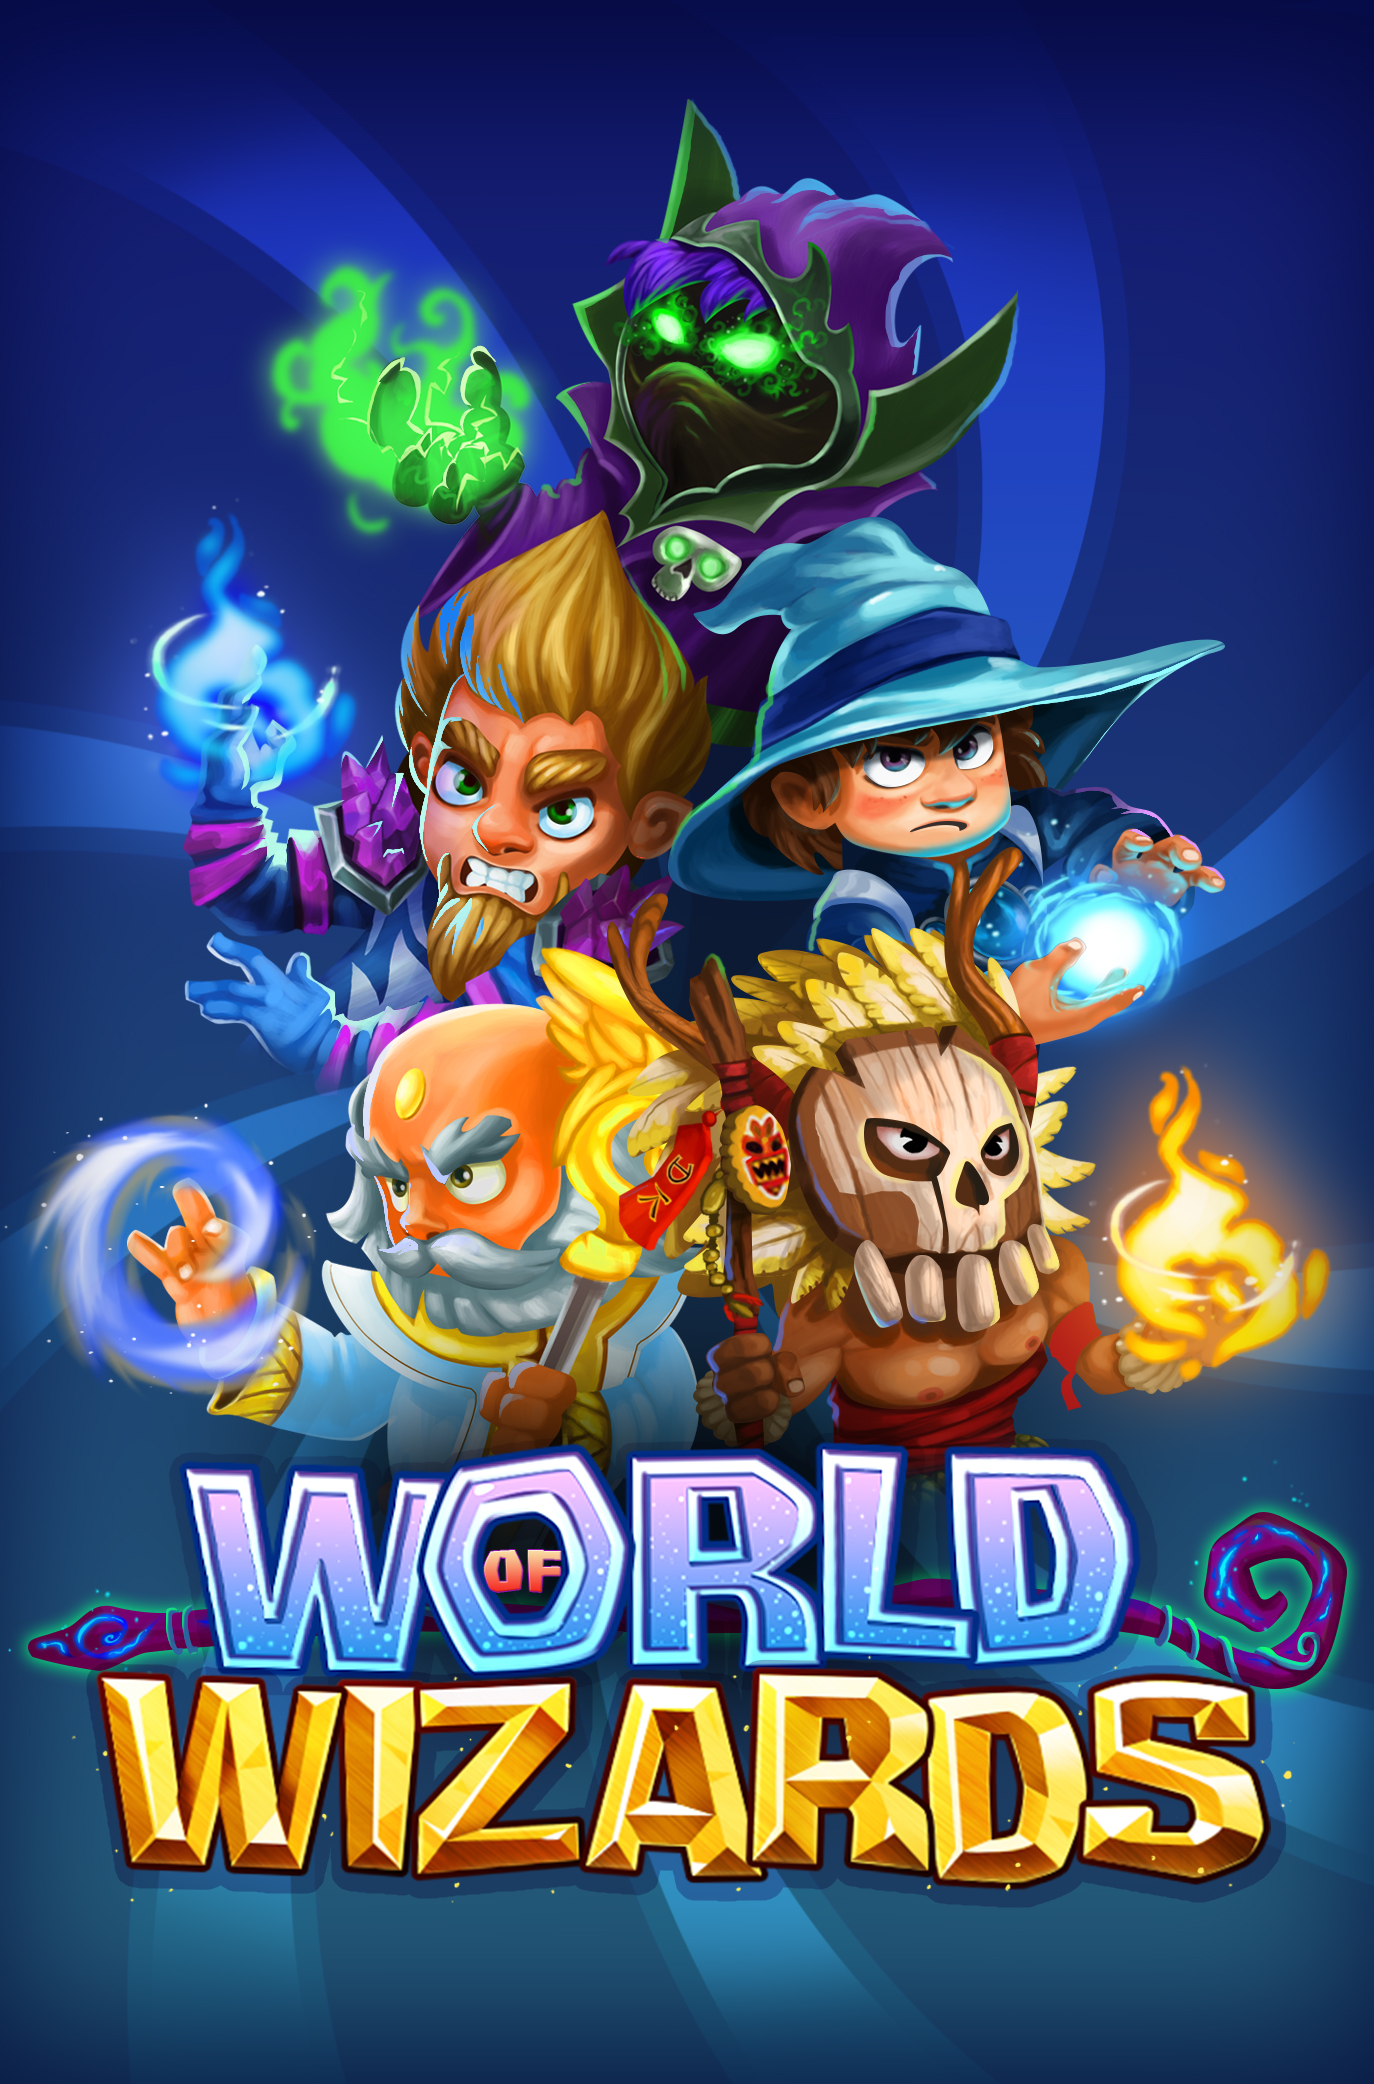 Become a powerful spellslinger in World of Wizards